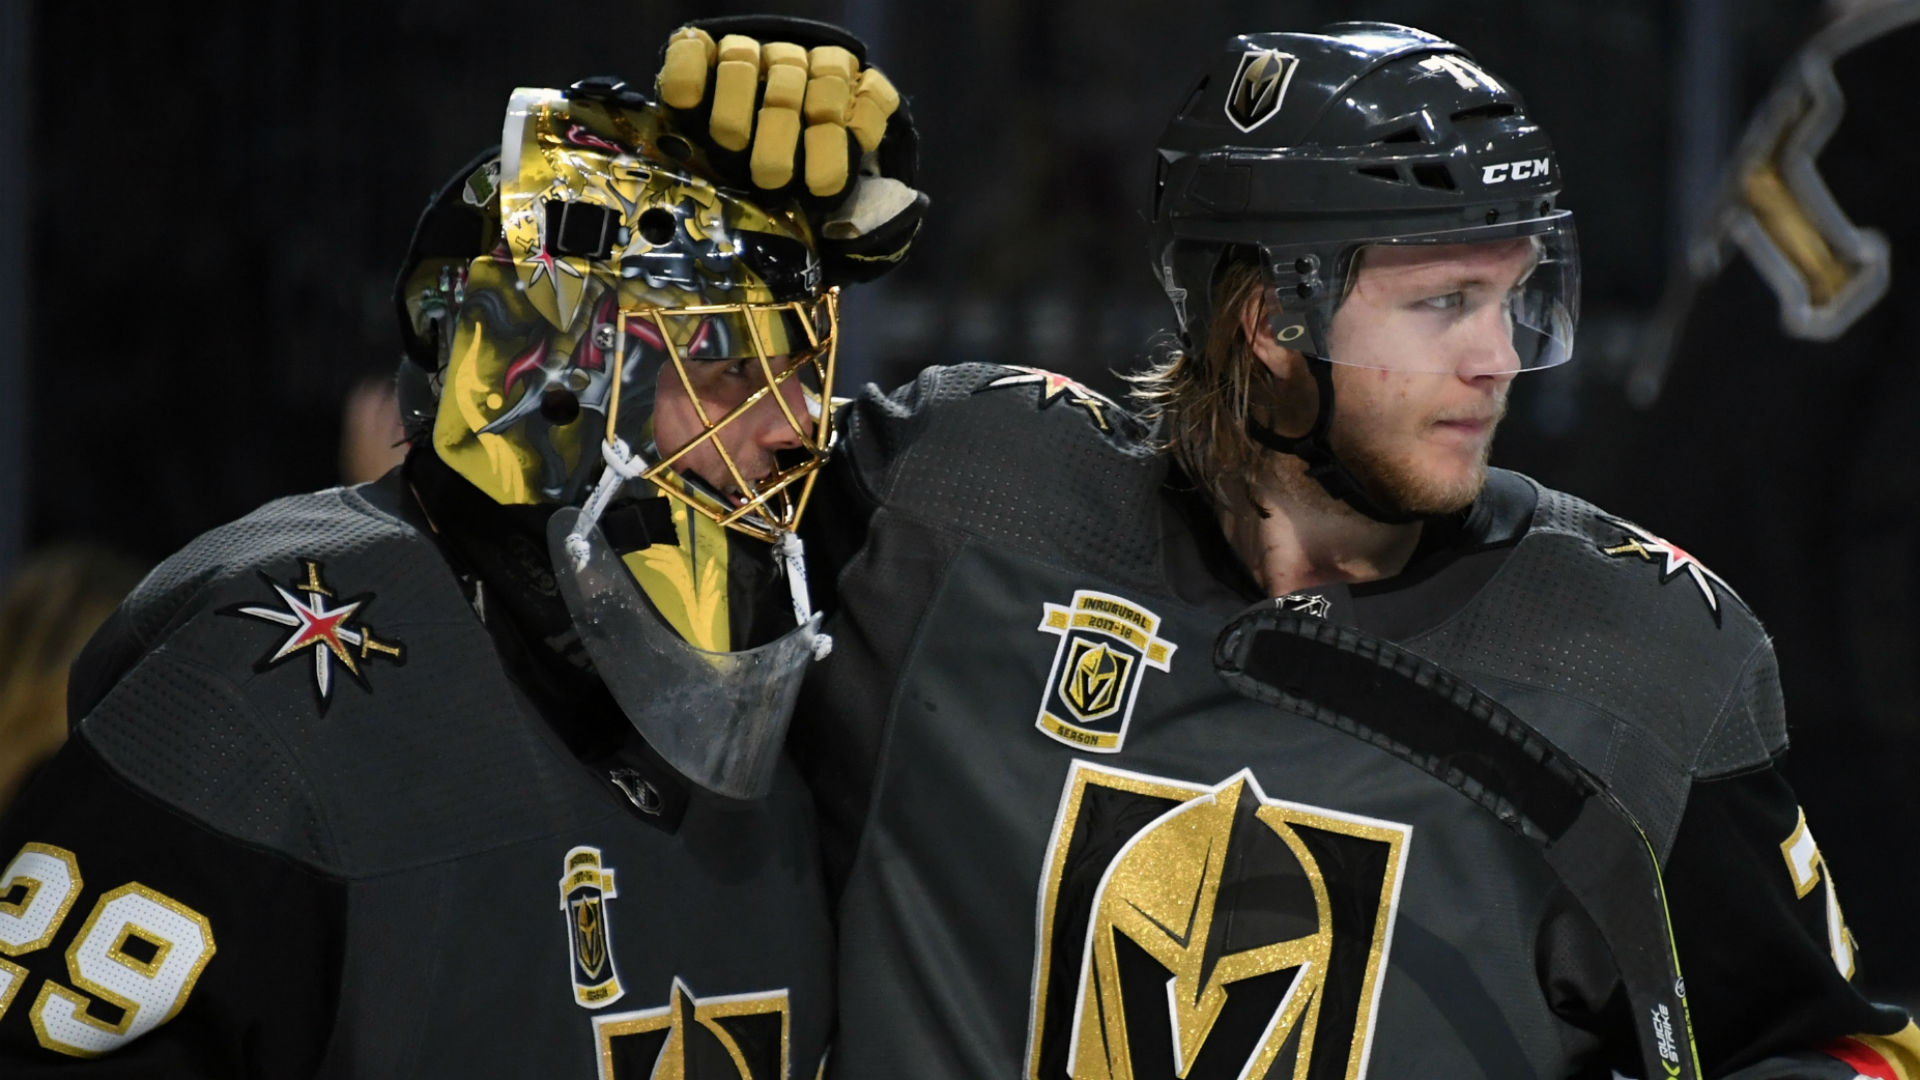 Already toast of hockey, Golden Knights' success story deserves wider audience